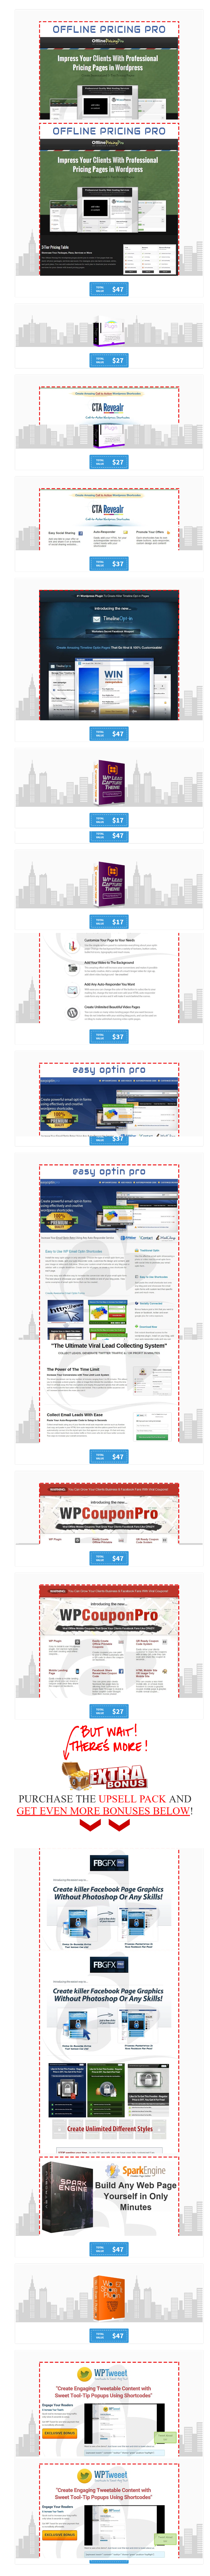 Loraven MultiBusiness WordPress Theme Bonuses